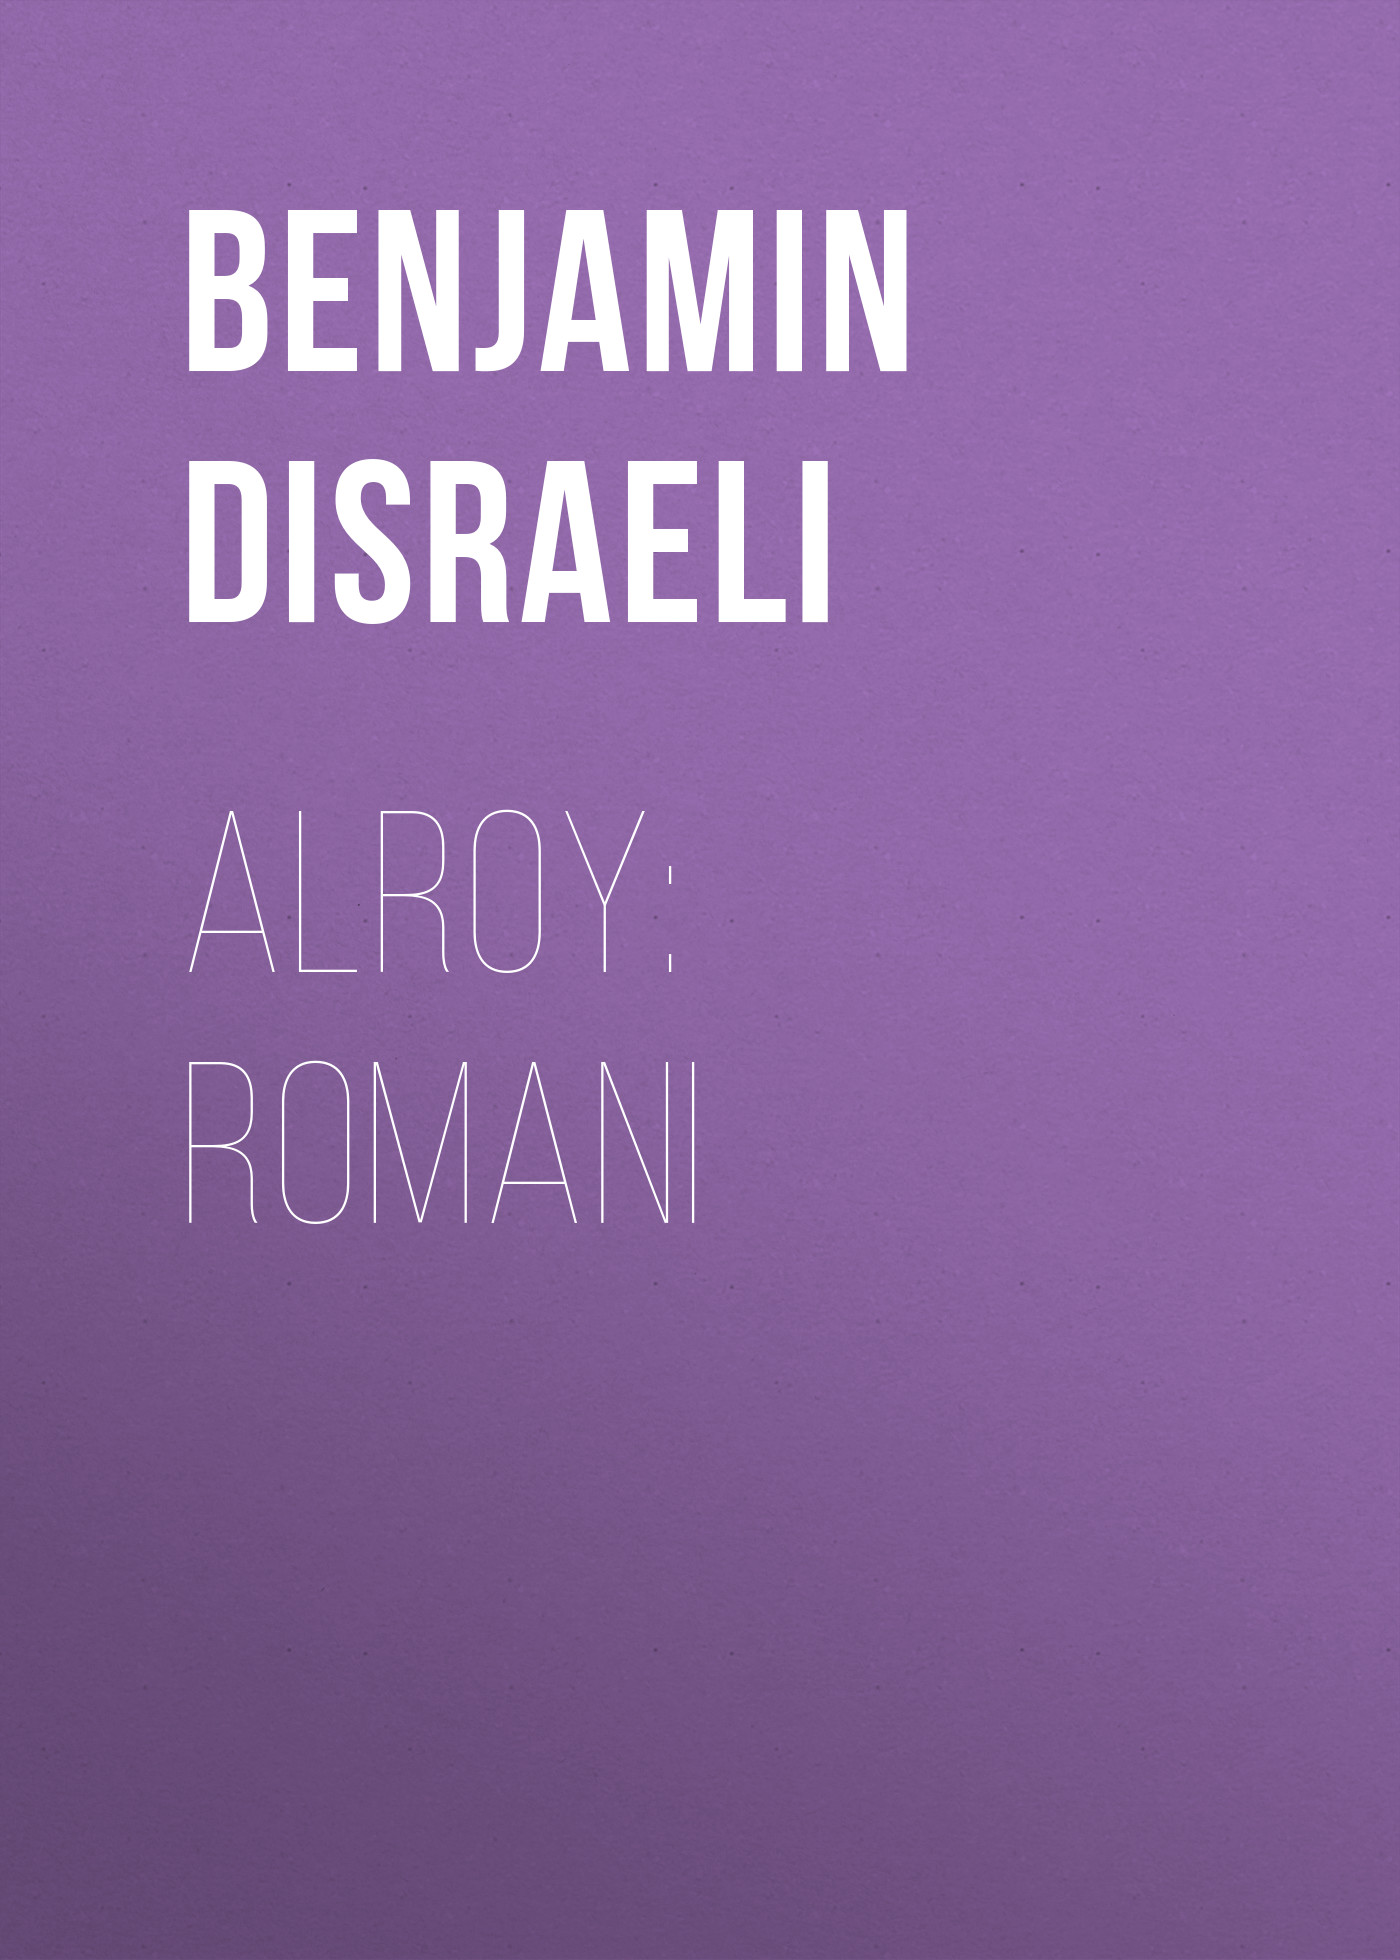 Benjamin Disraeli Alroy: Romani disraeli benjamin disraeli in outline being a biography of benjamin disraeli and an abridgment of all his novels with full index page 10 page 7